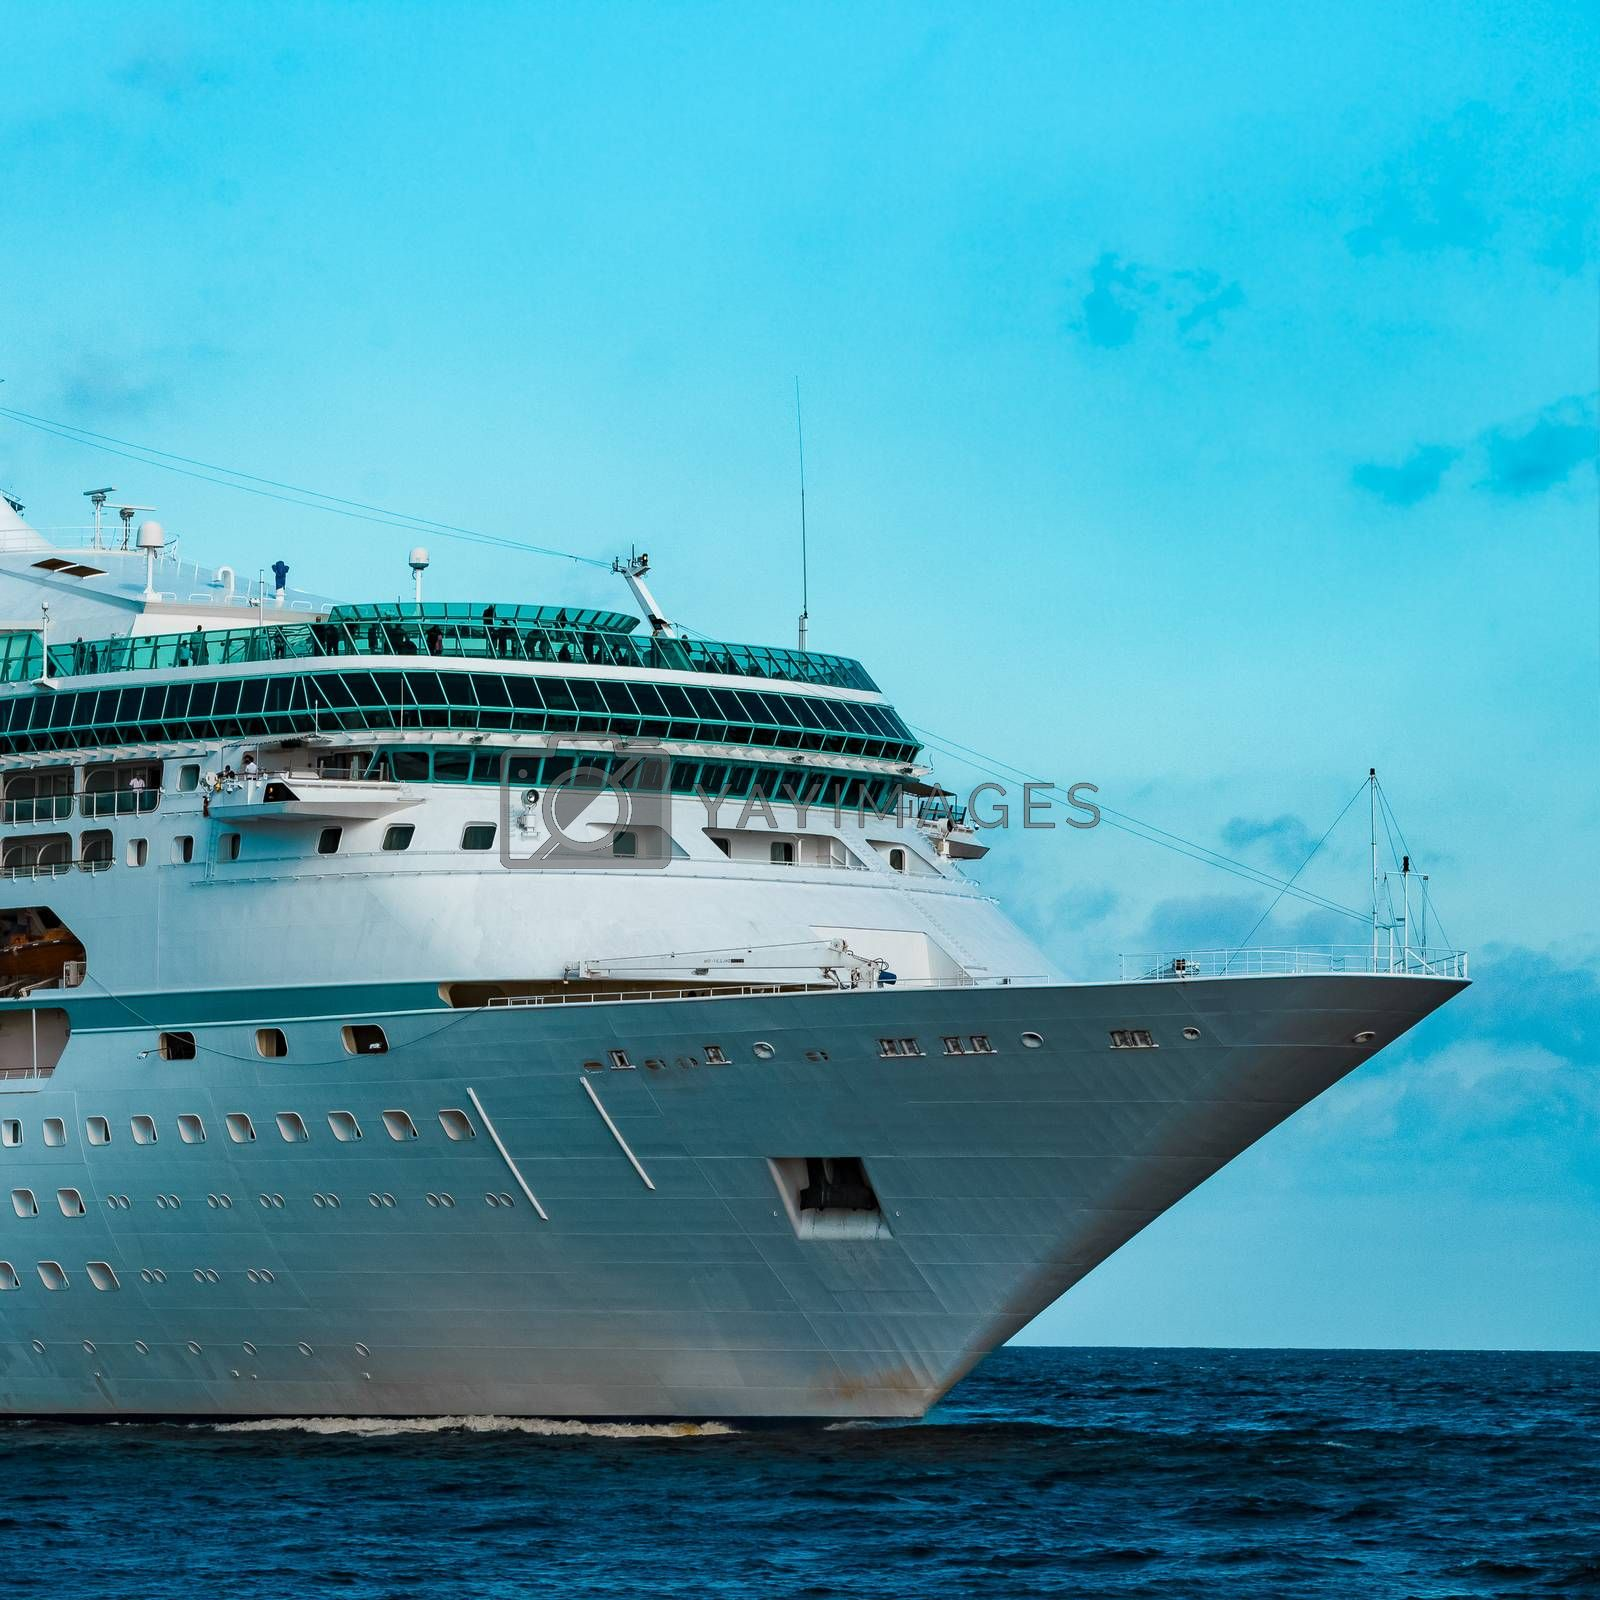 Luxury cruise liner underway. Tour travel and spa services